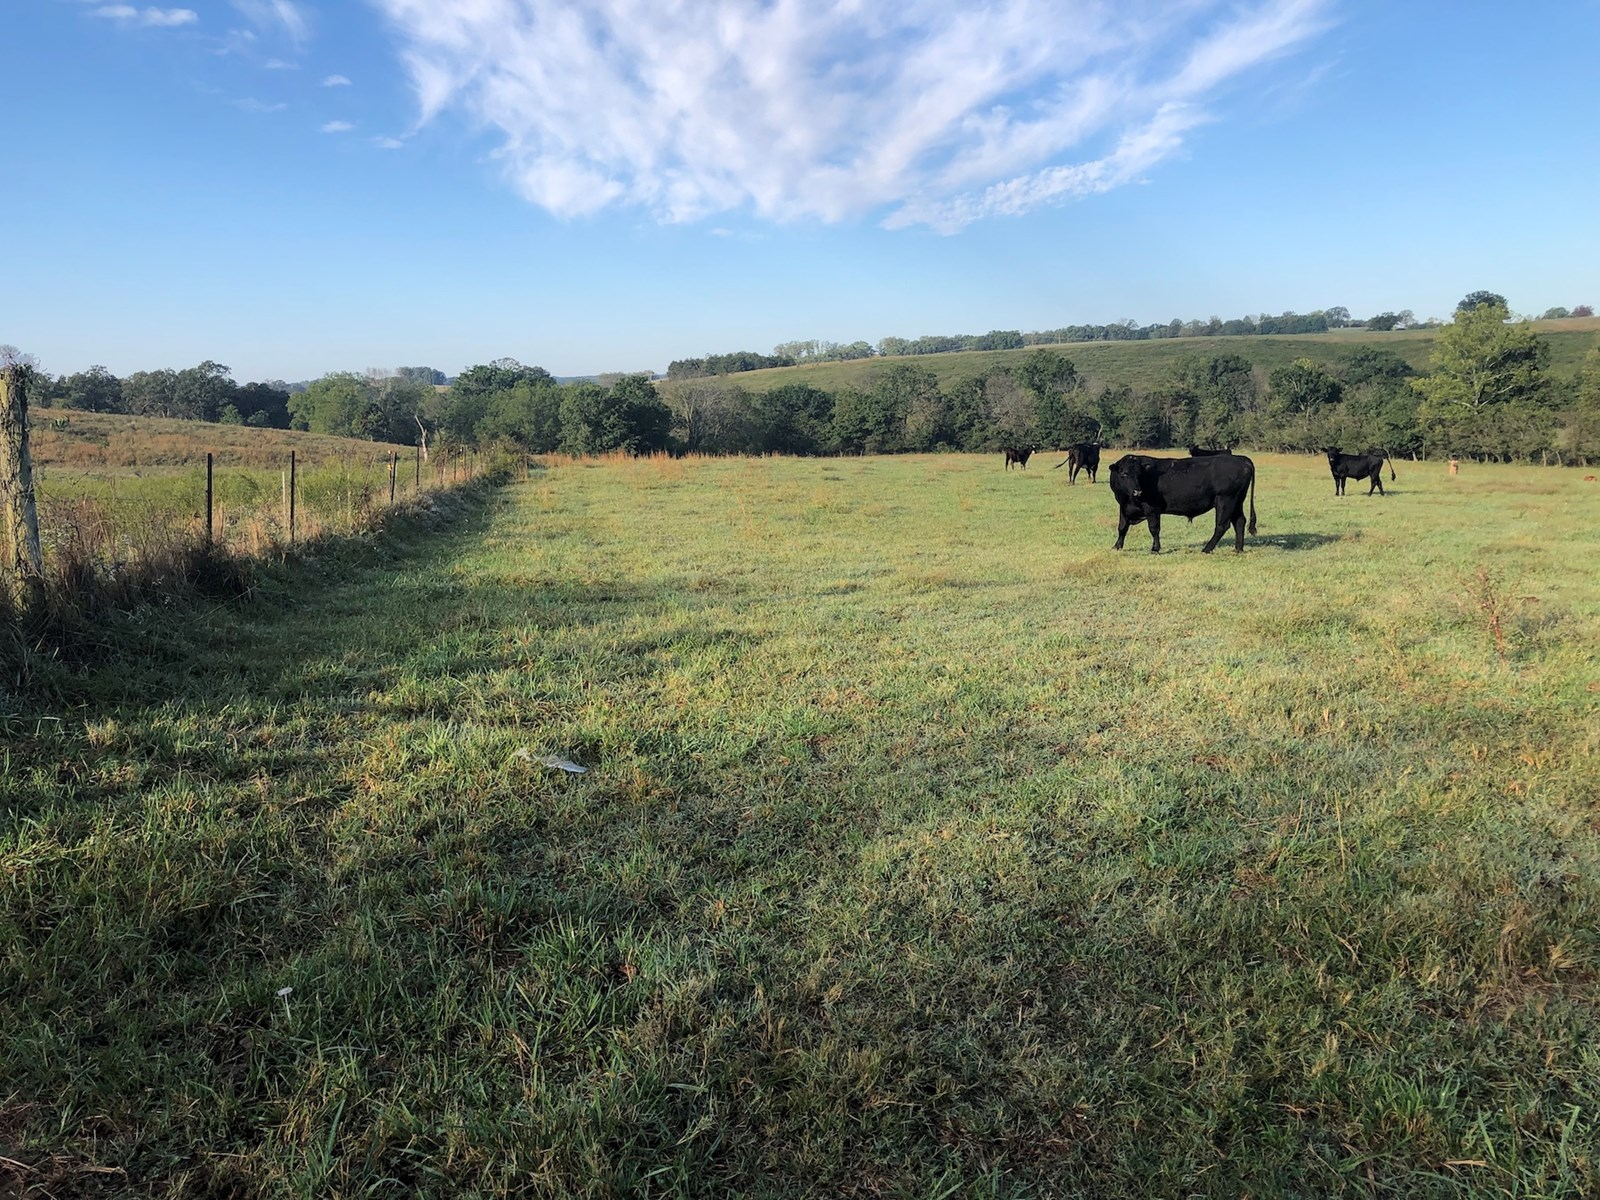 Southern Missouri Farm for Sale - Grazing, Hunting, Cattle